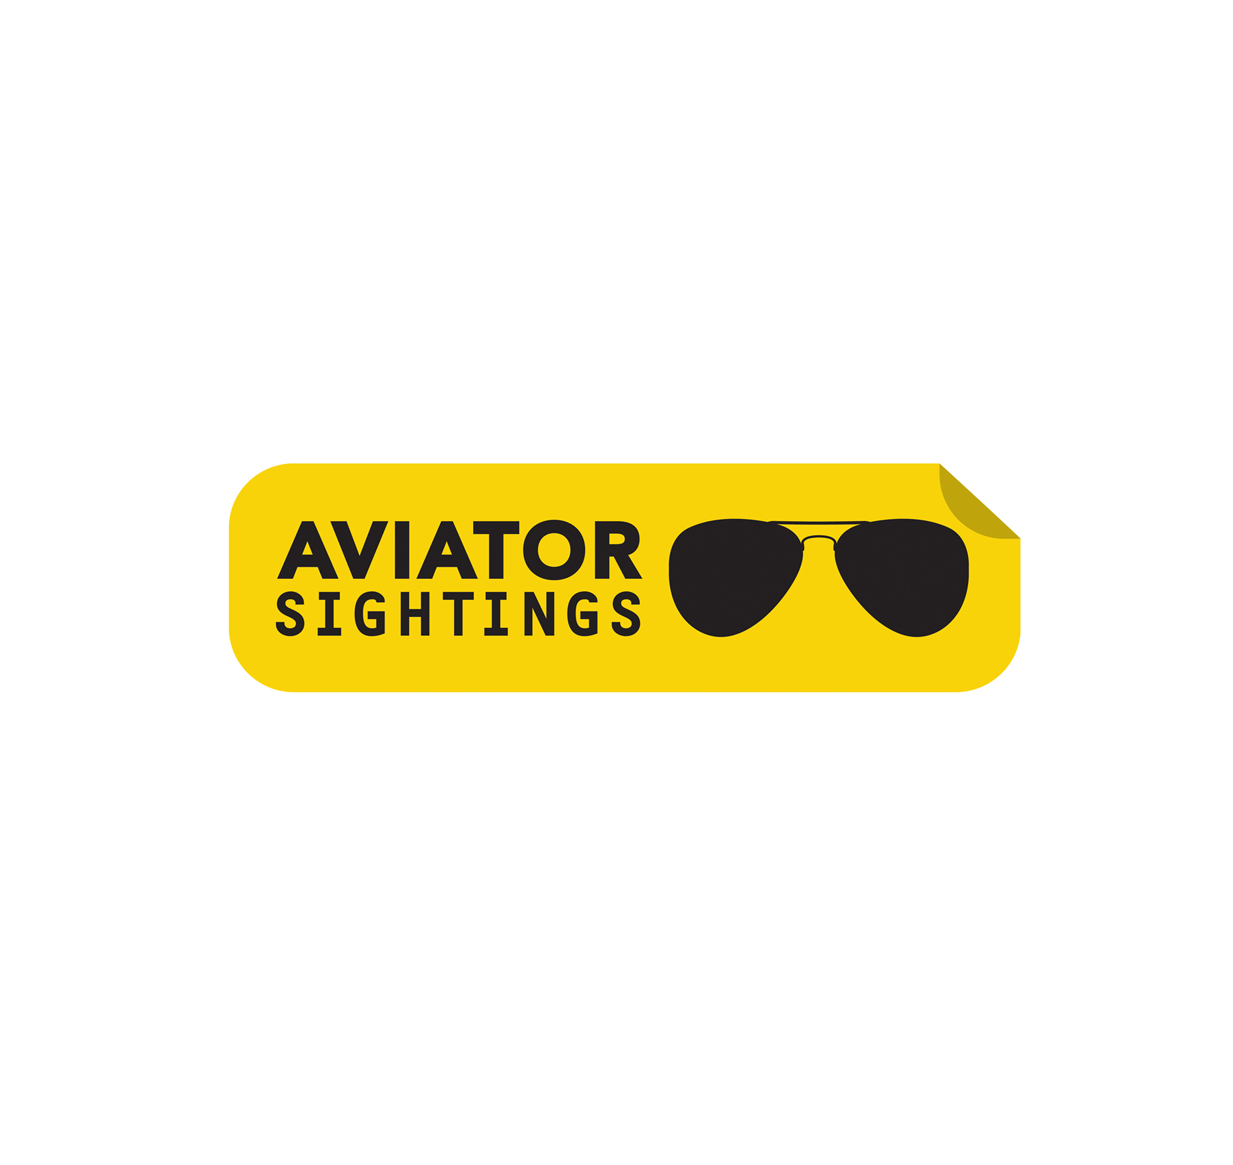 Ray-Ban, Never Hide, Aviator Sightings, Logo